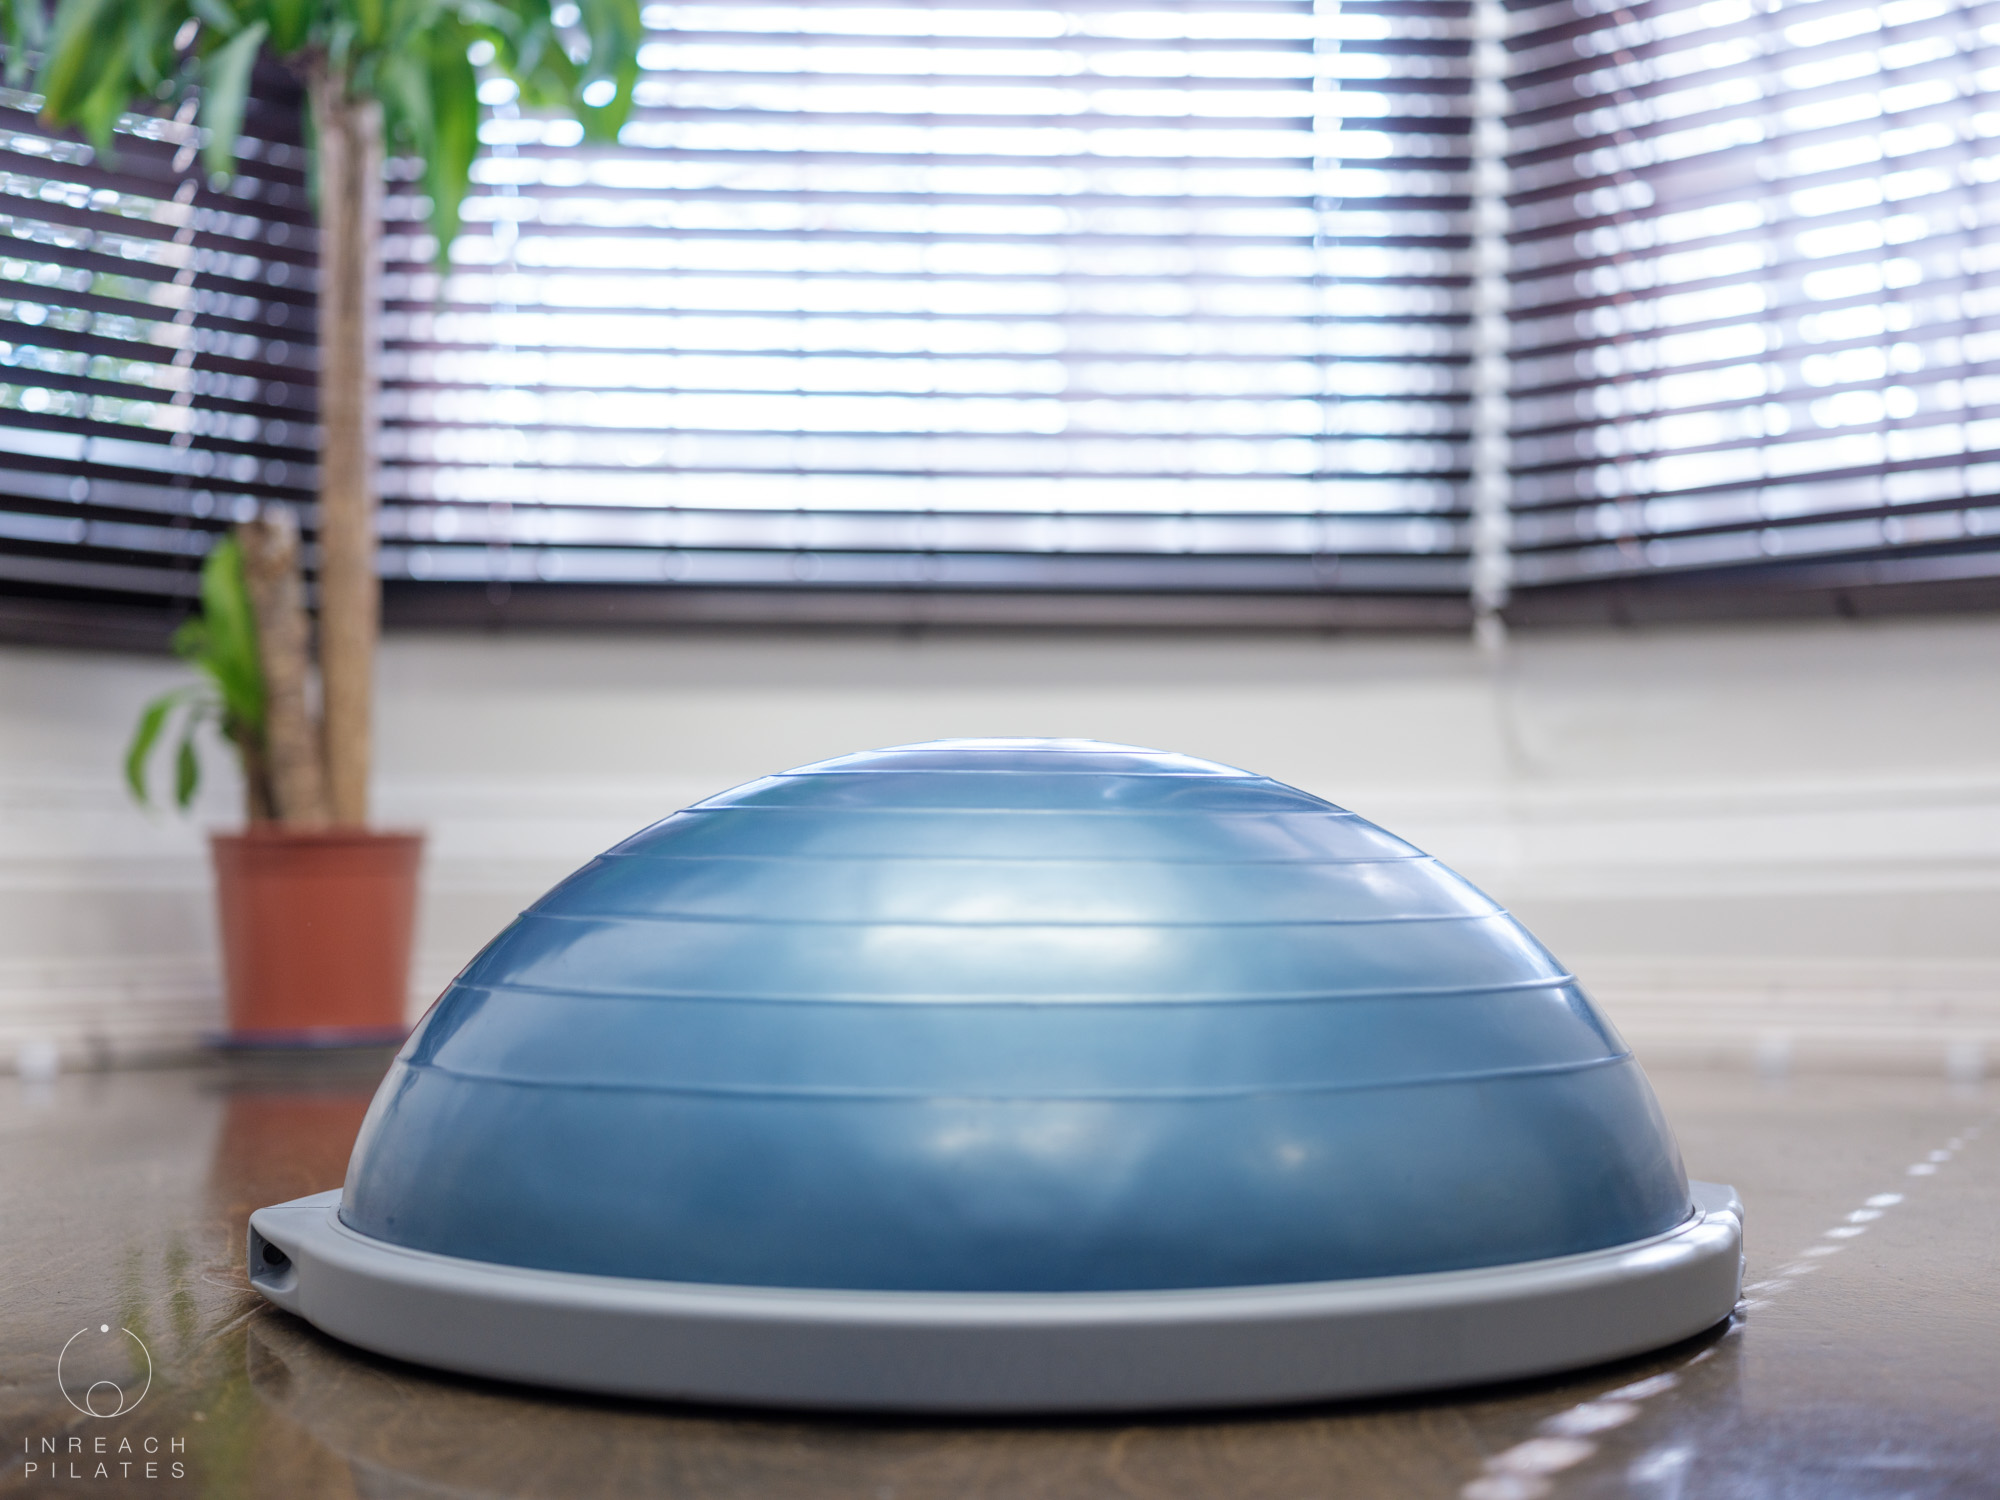 sheffield pilates studio - equipment - bosu